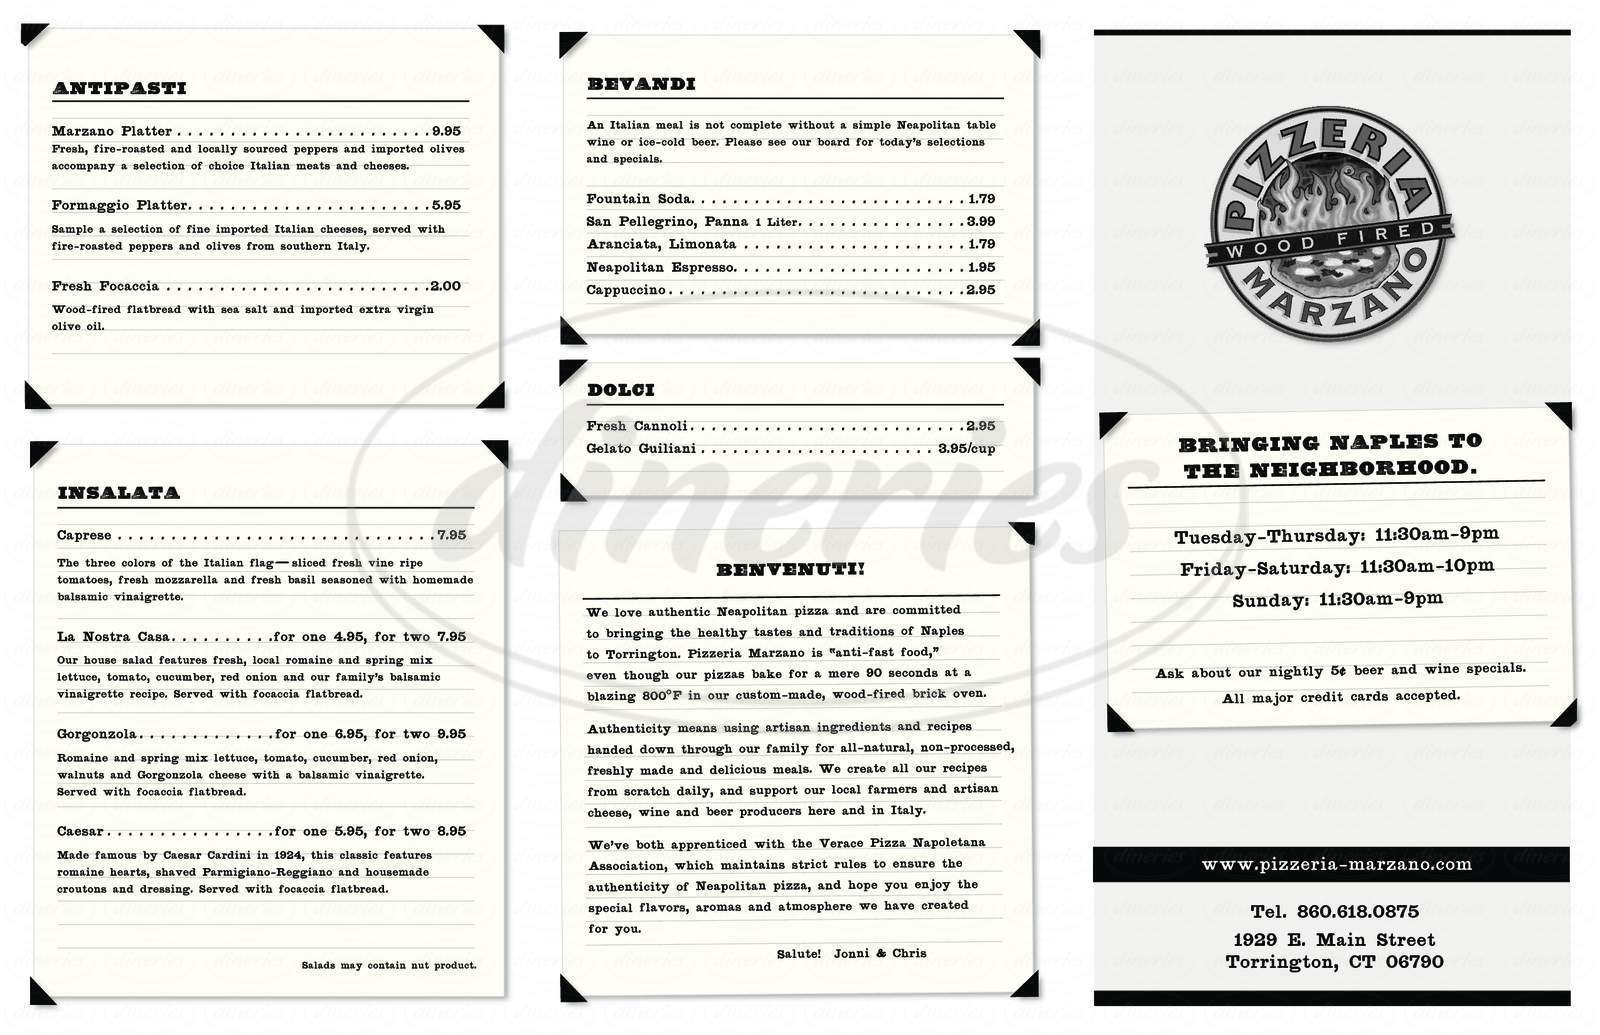 menu for Pizzeria Marzano